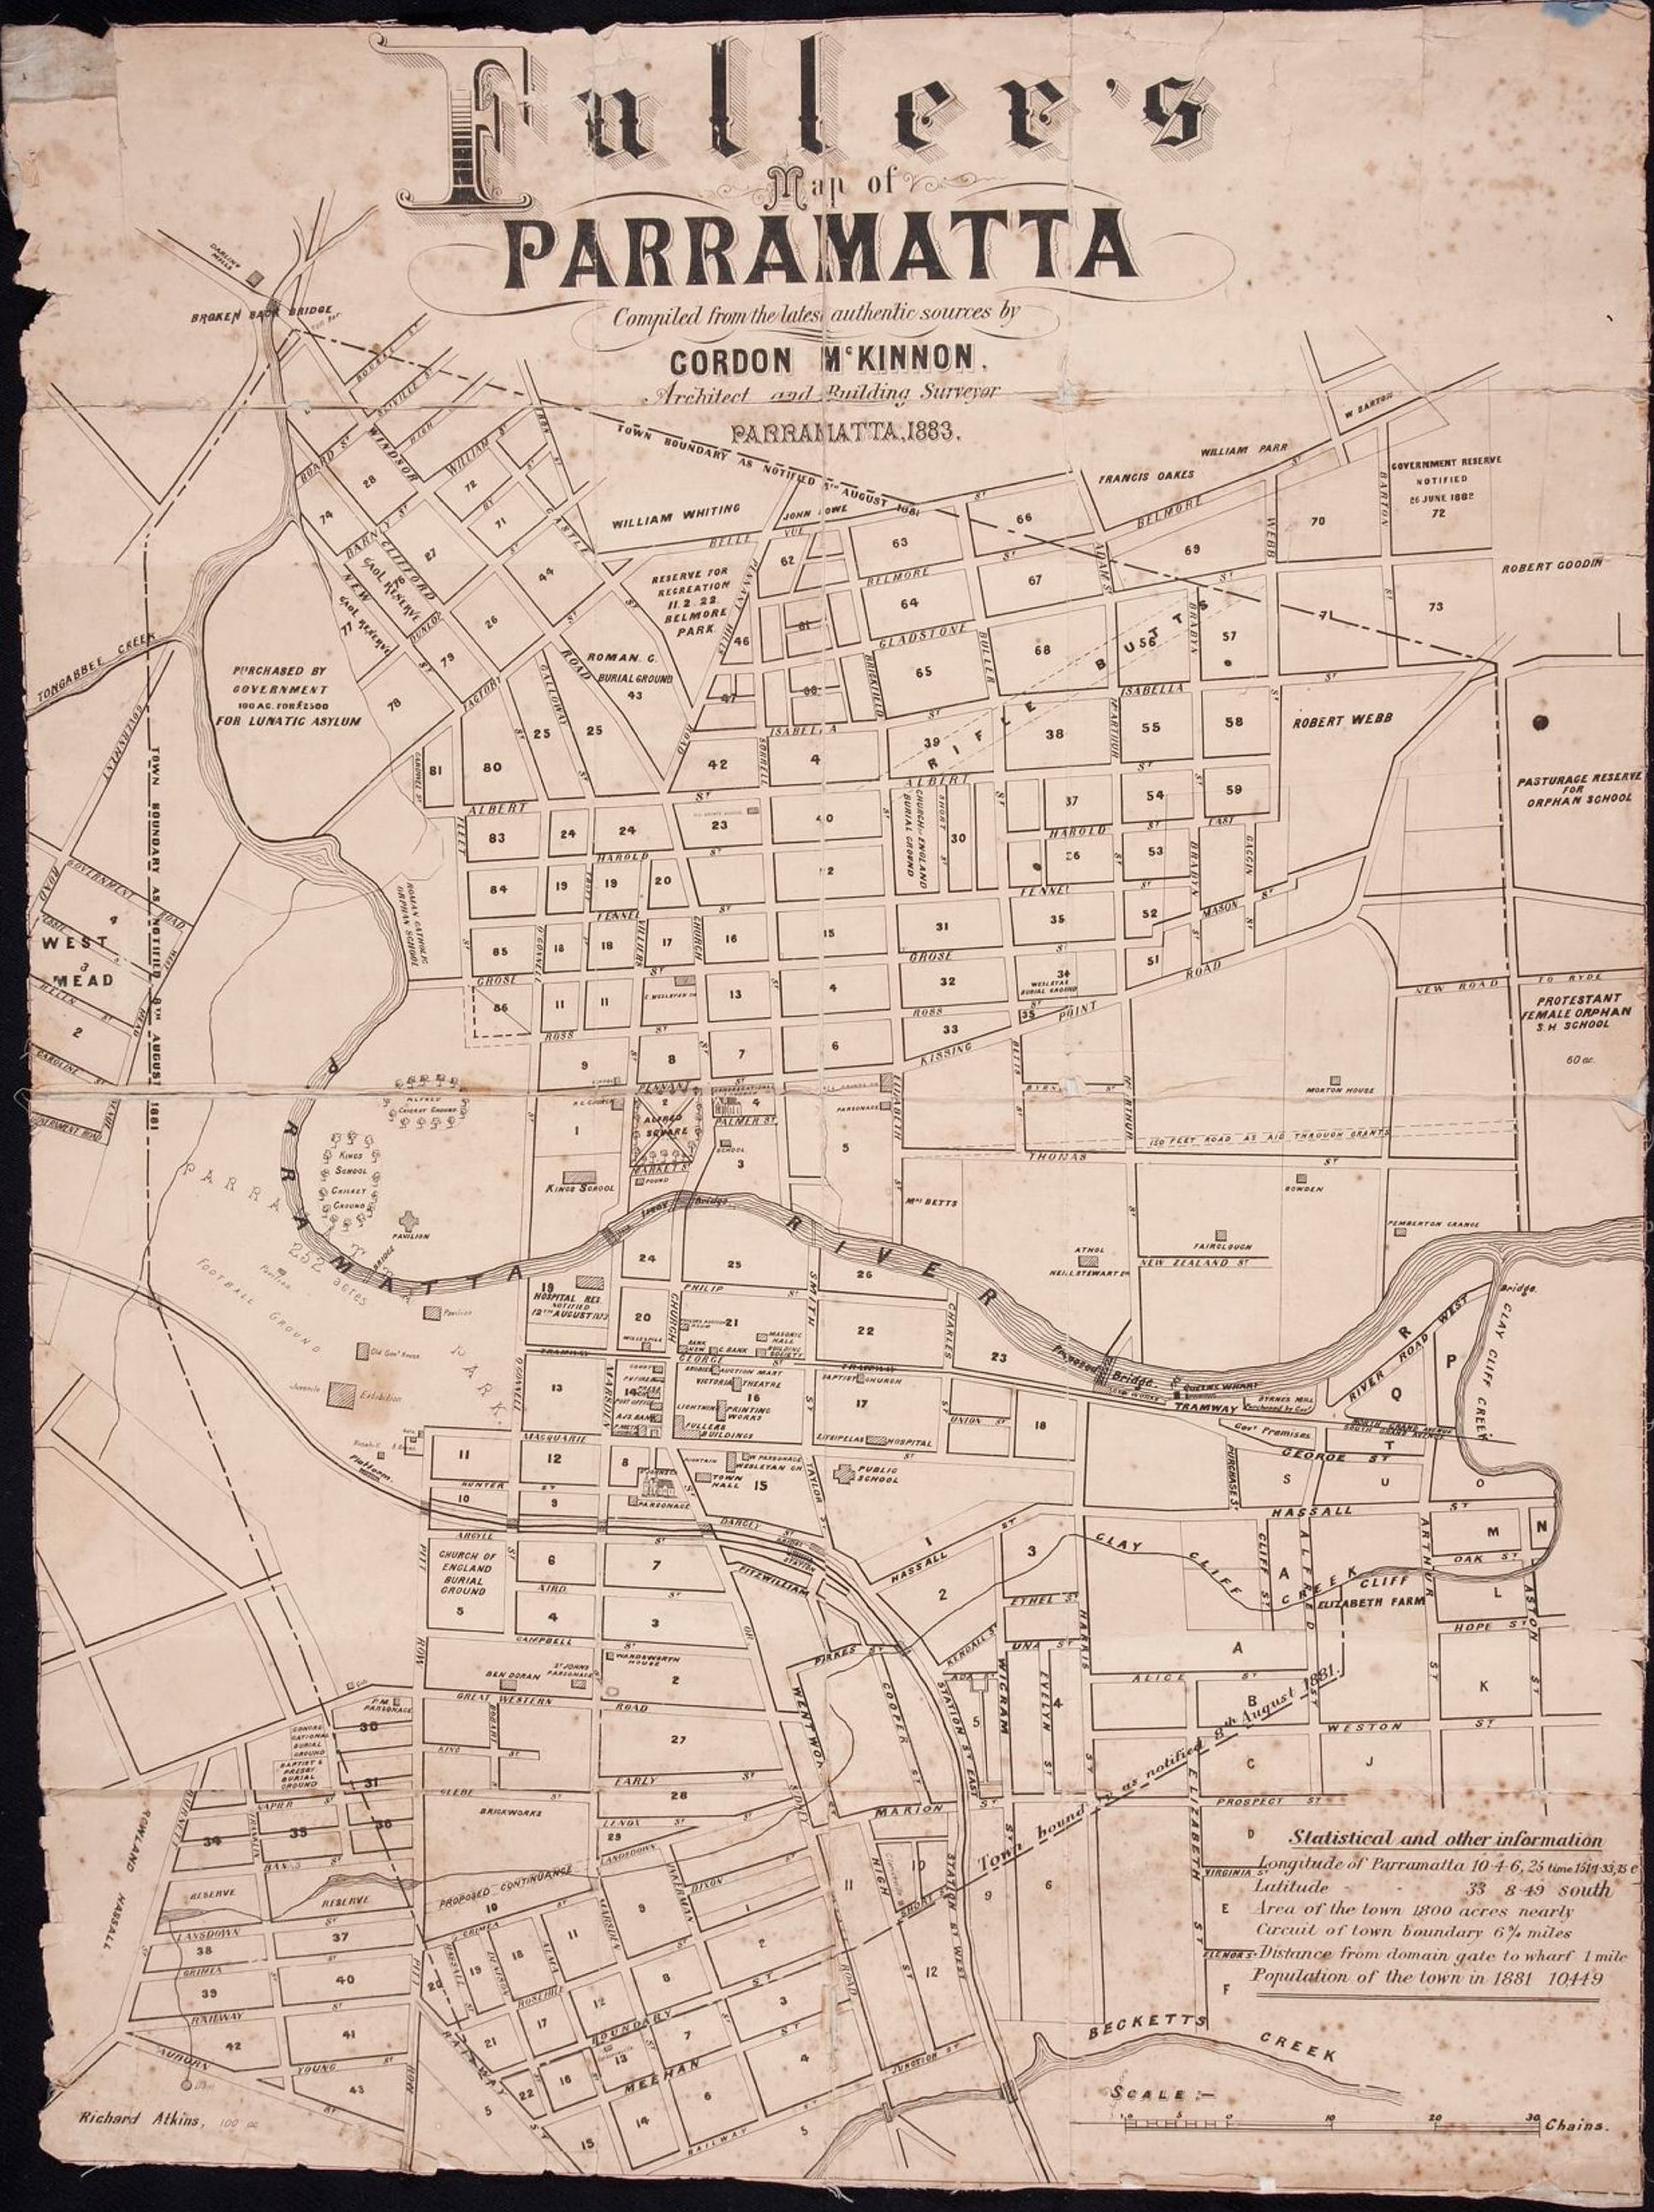 Fuller's map of Parramatta, compiled from the latest authentic sources by Gordon McKinnon, Architect and building surveyor, 1883